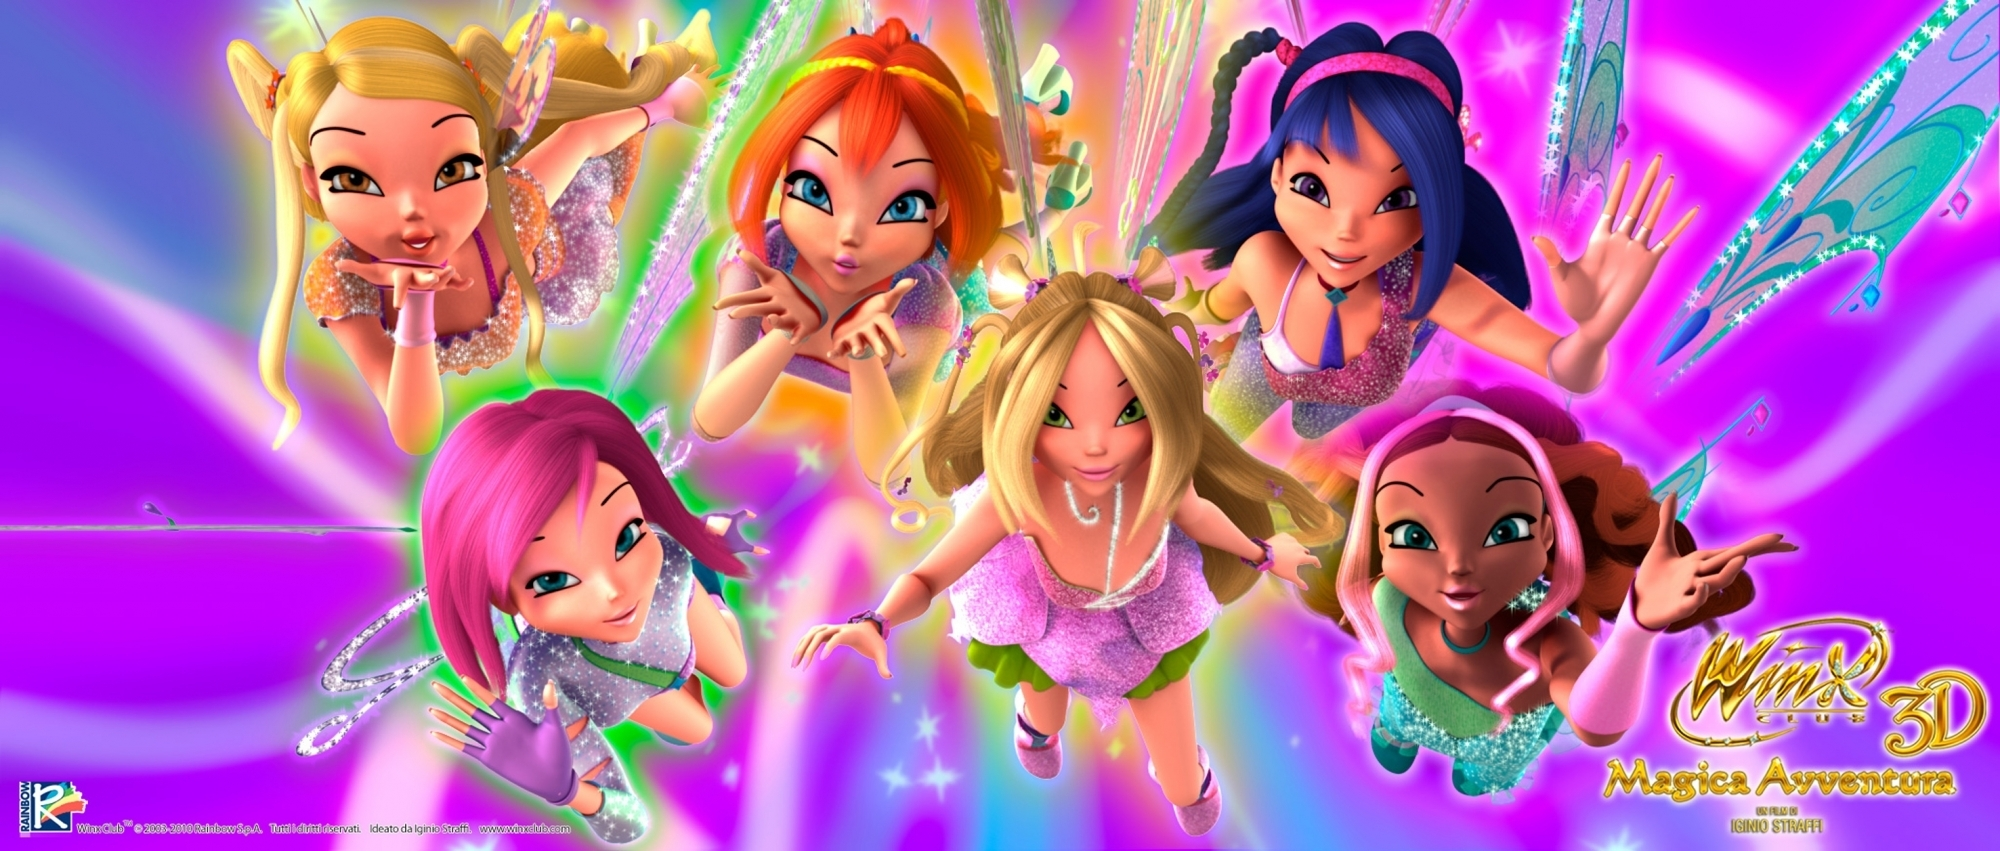 telecharger winx club